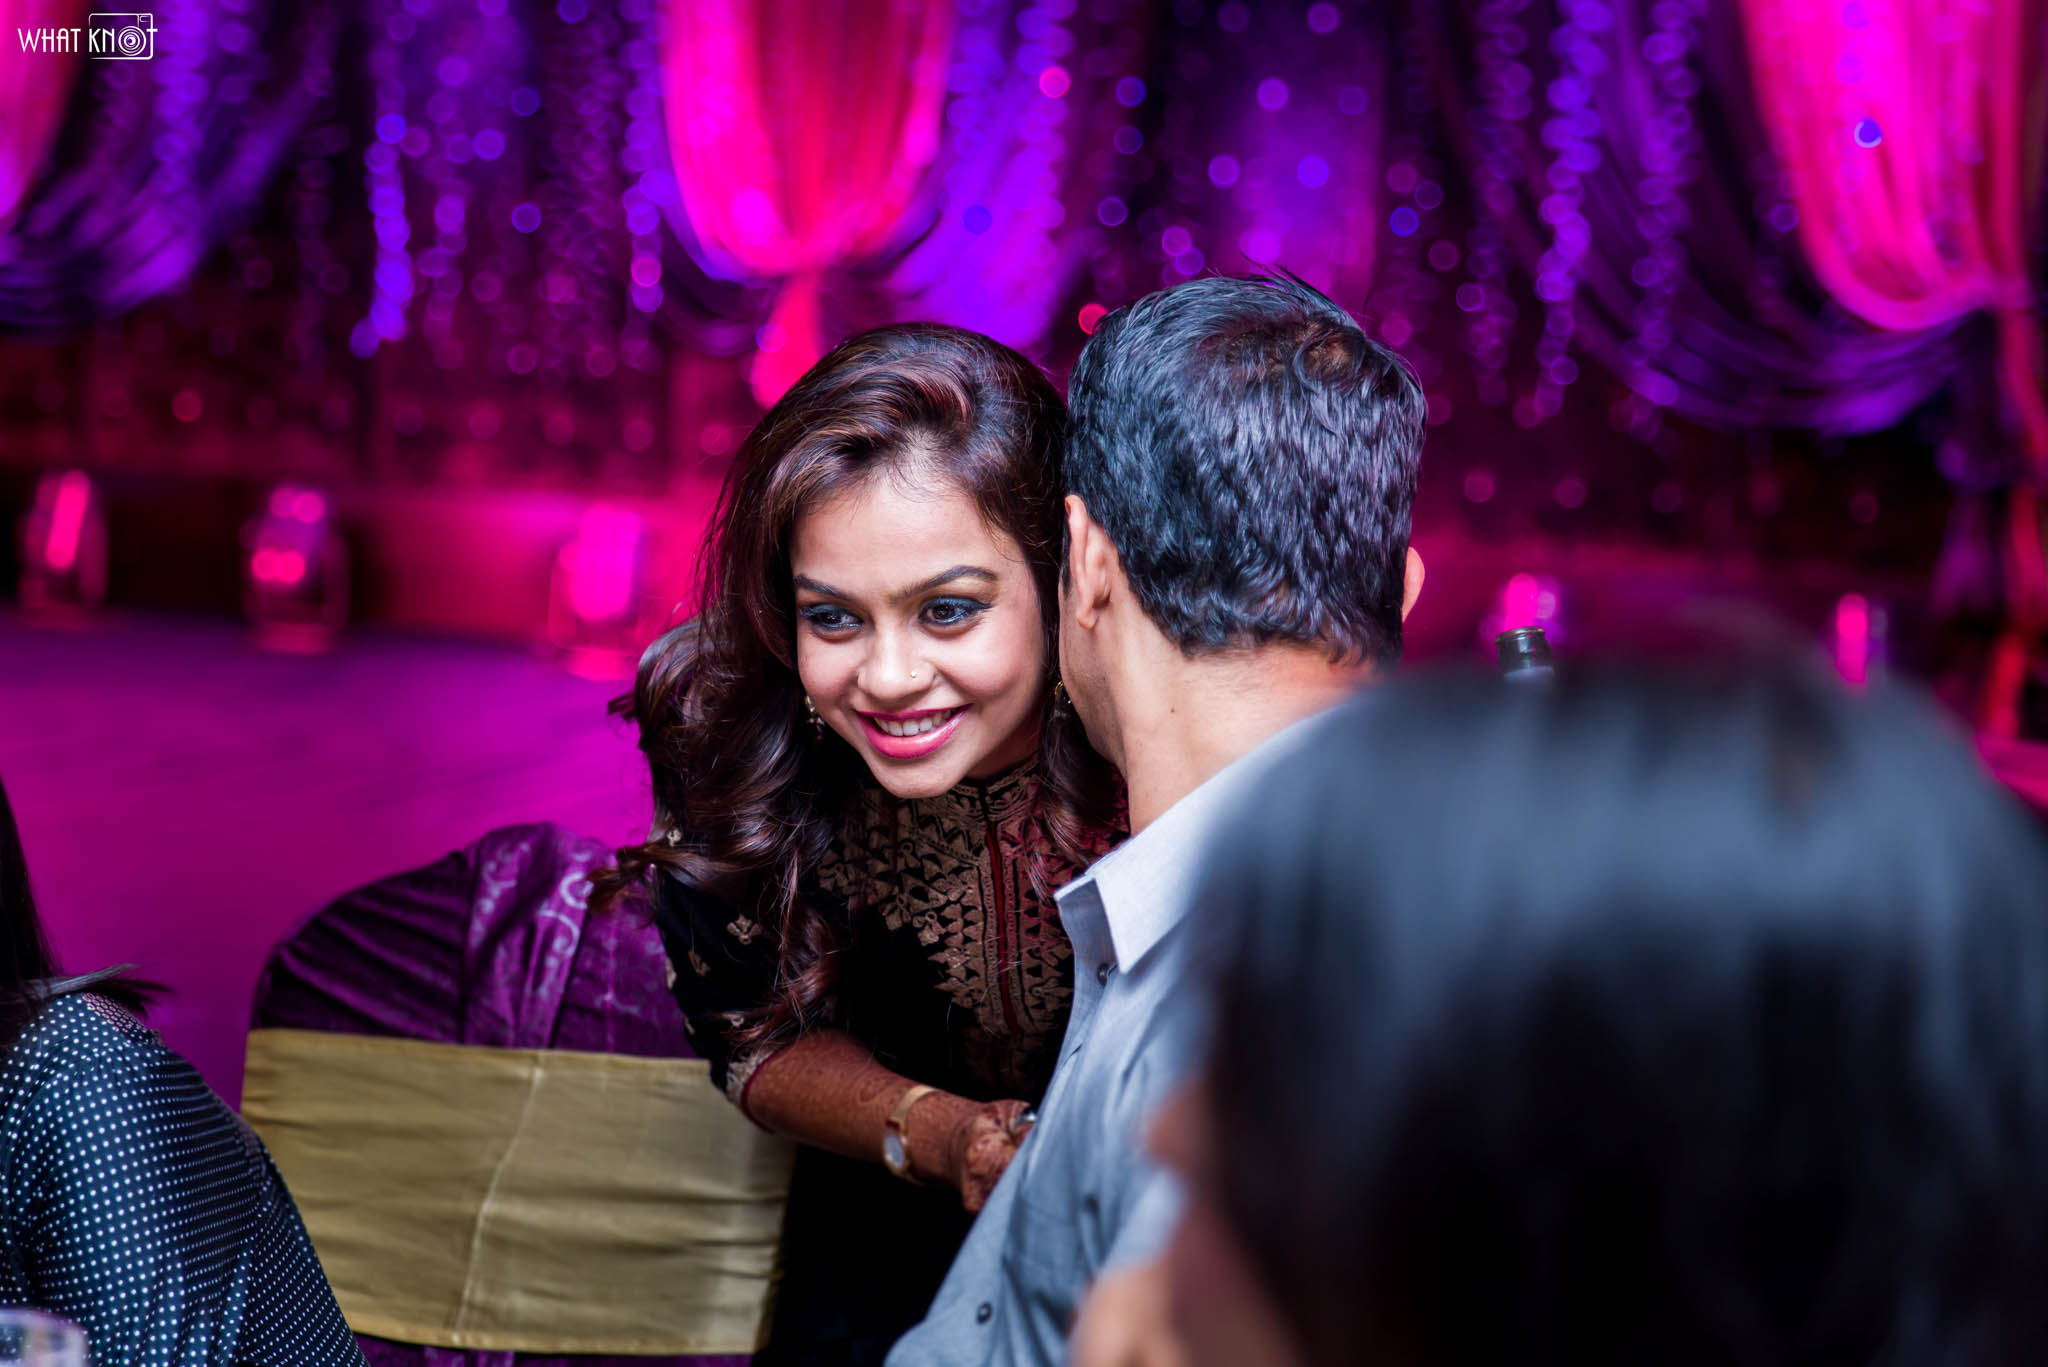 Candid-Wedding-Photography-WhatKnot-Marathi-158